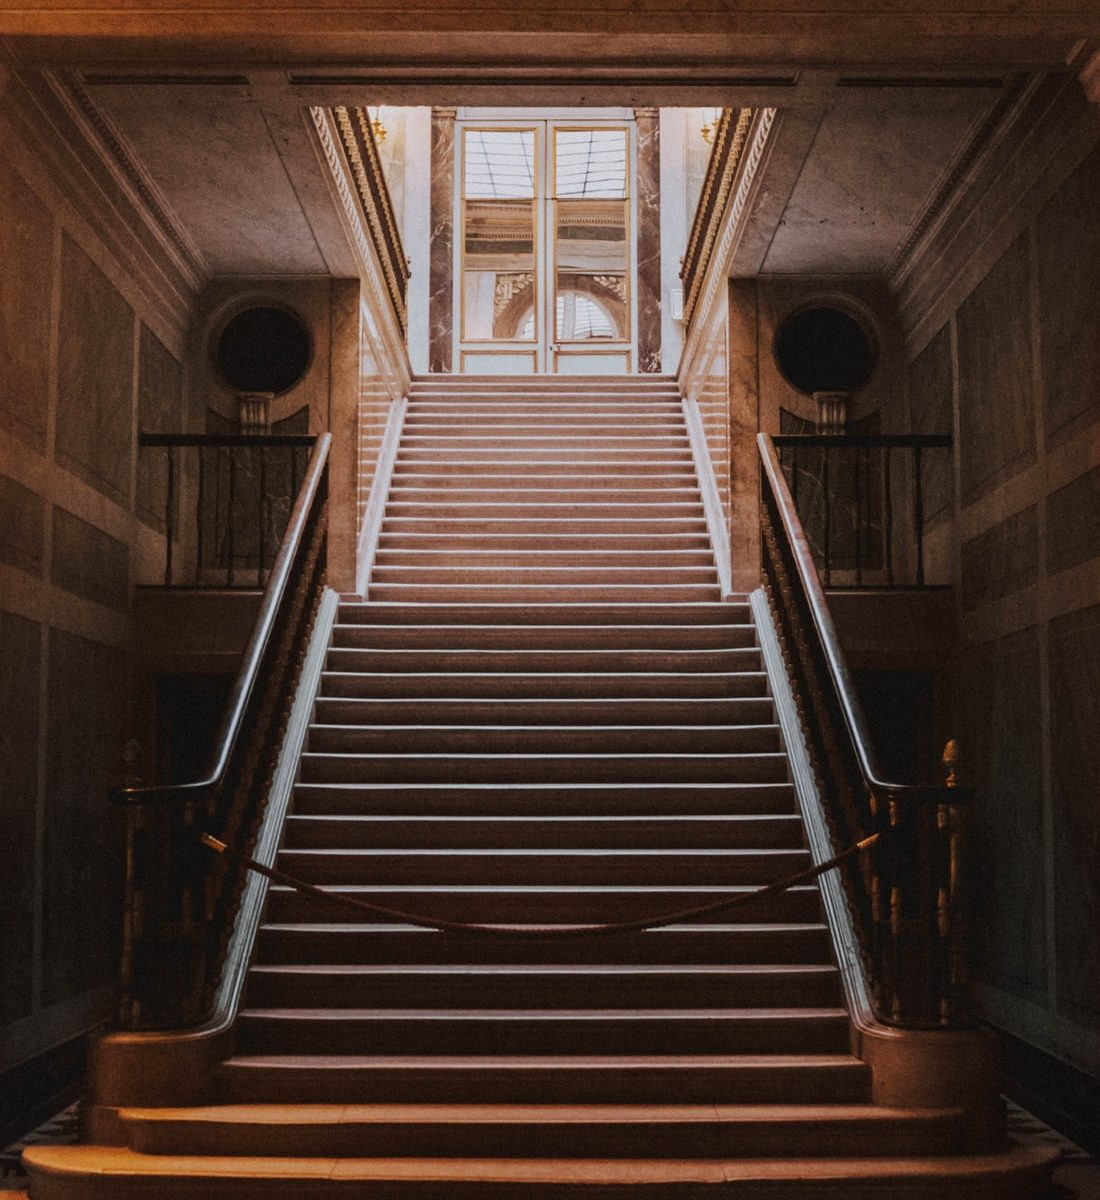 Sliding Down The Banister Towards A No-deal Brexit